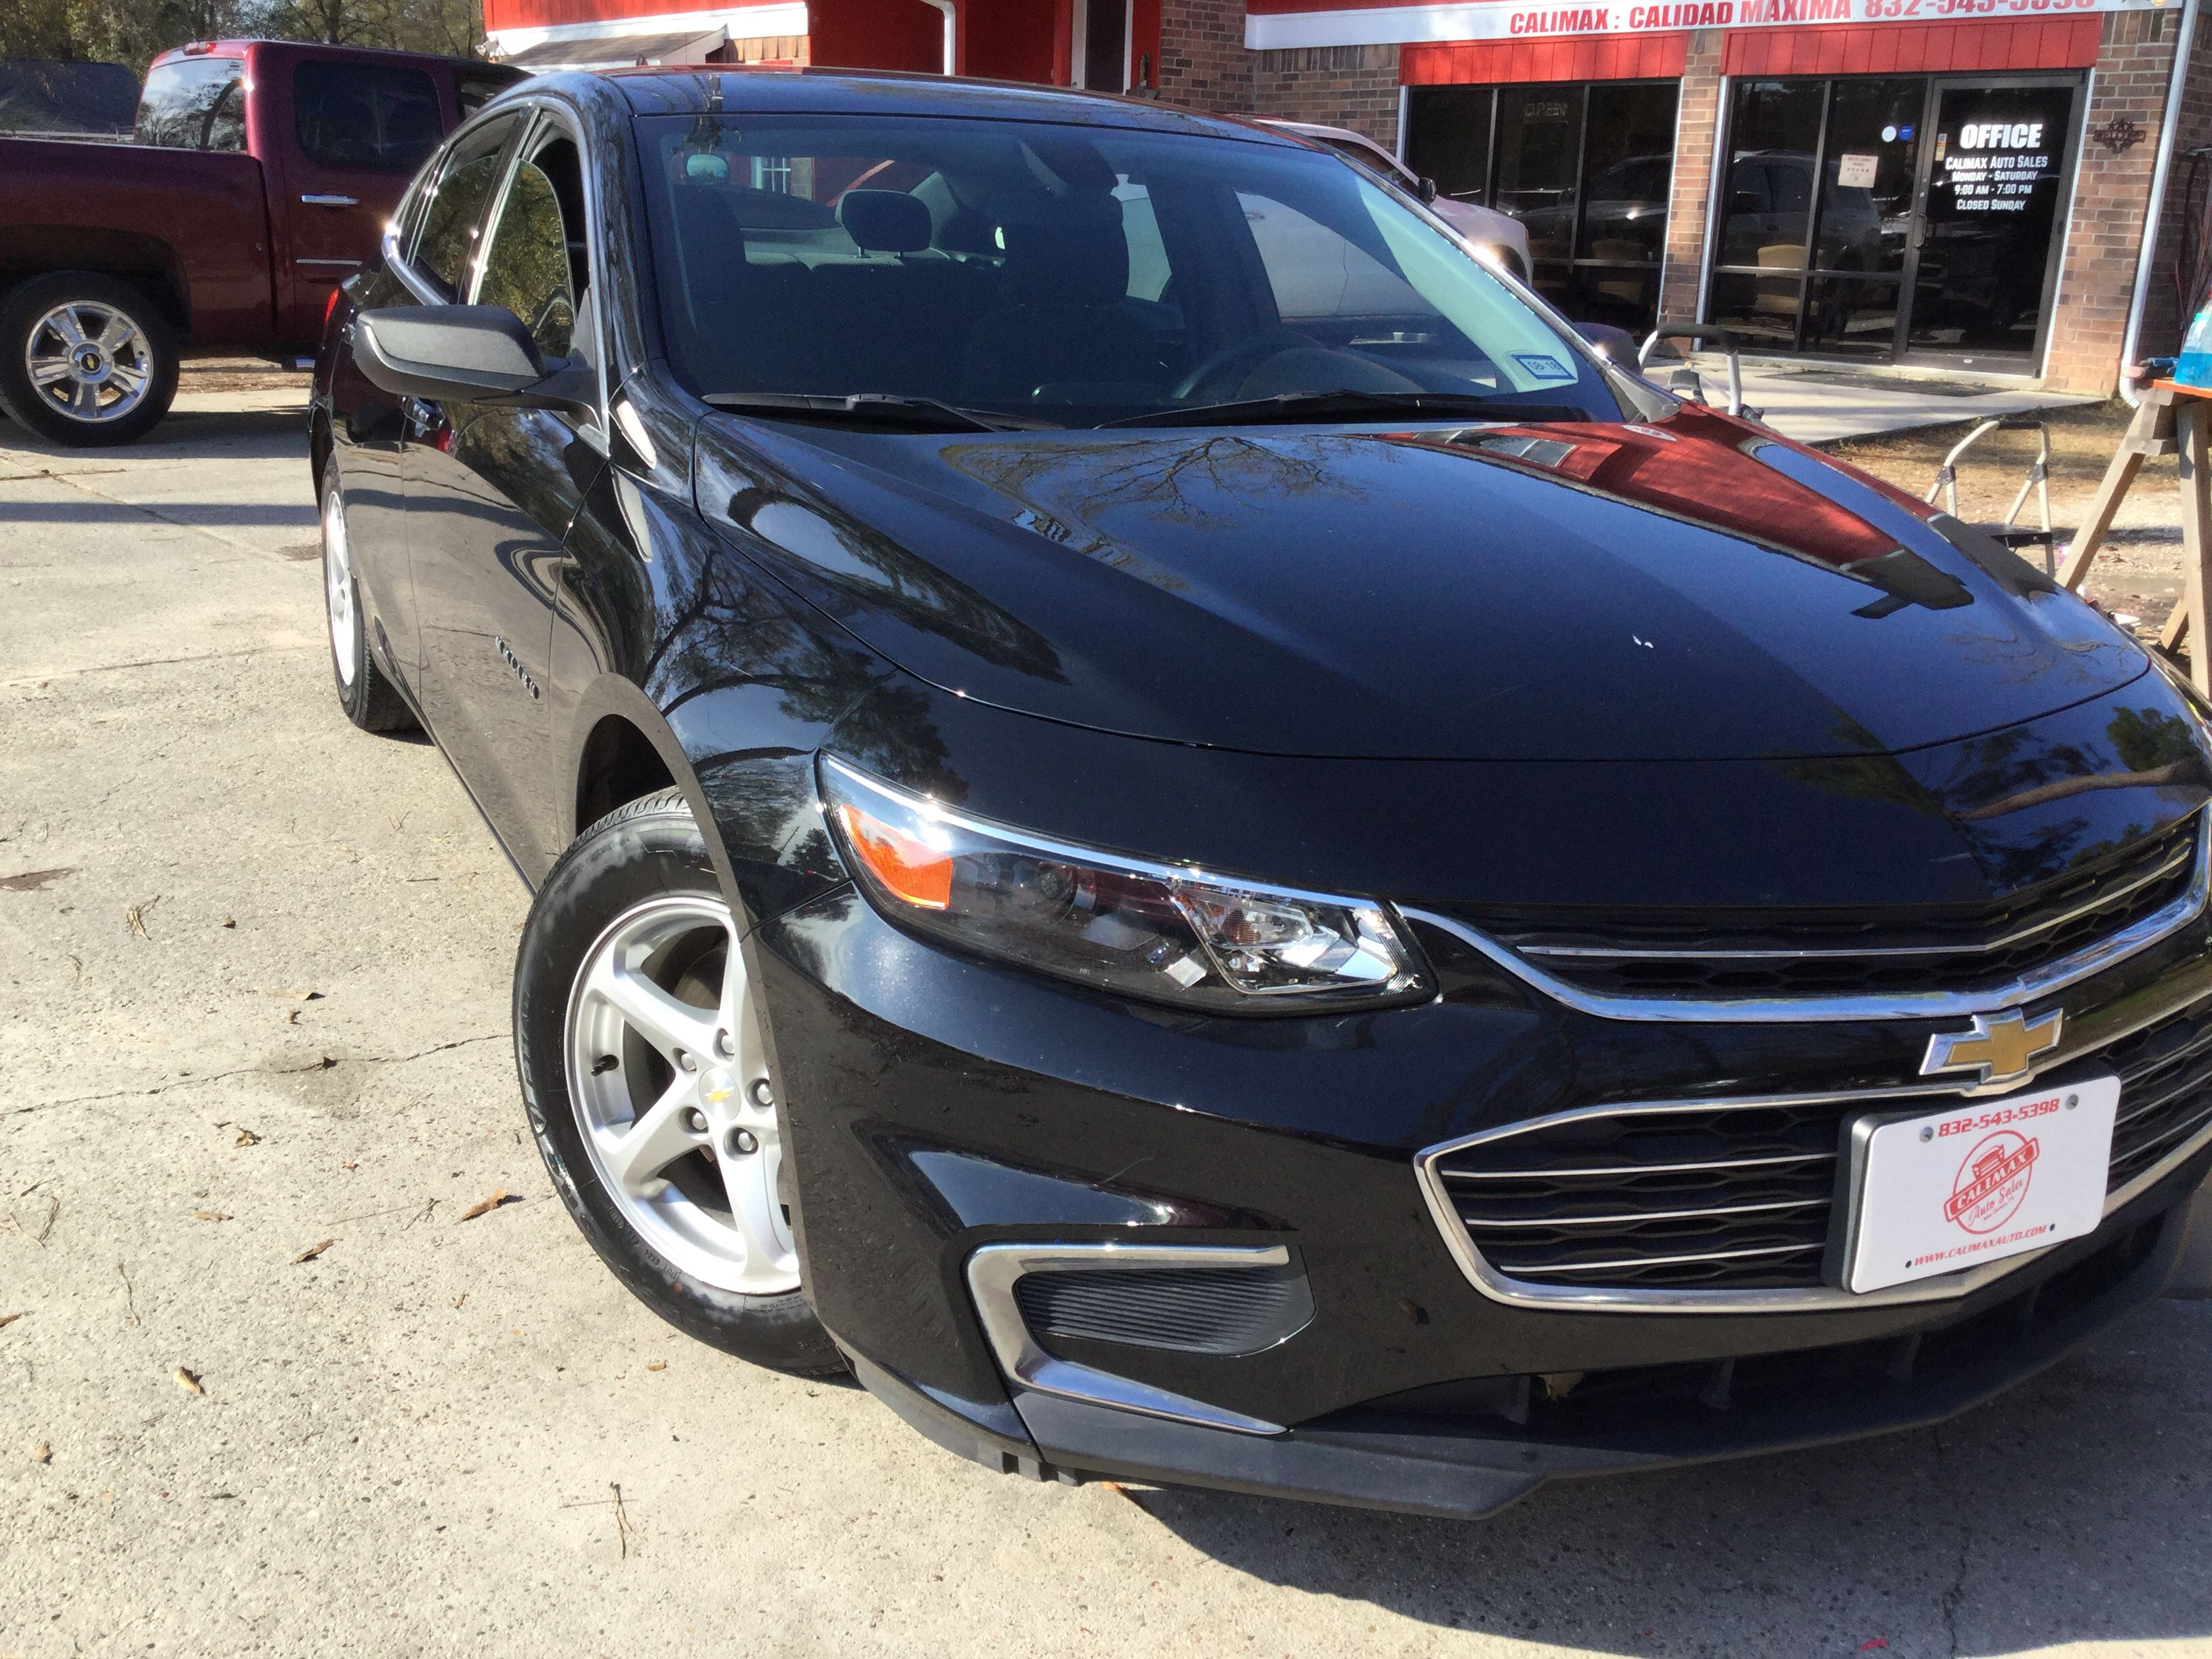 Pin By Calimax Auto Sales On Sedans Malibu For Sale Chevrolet